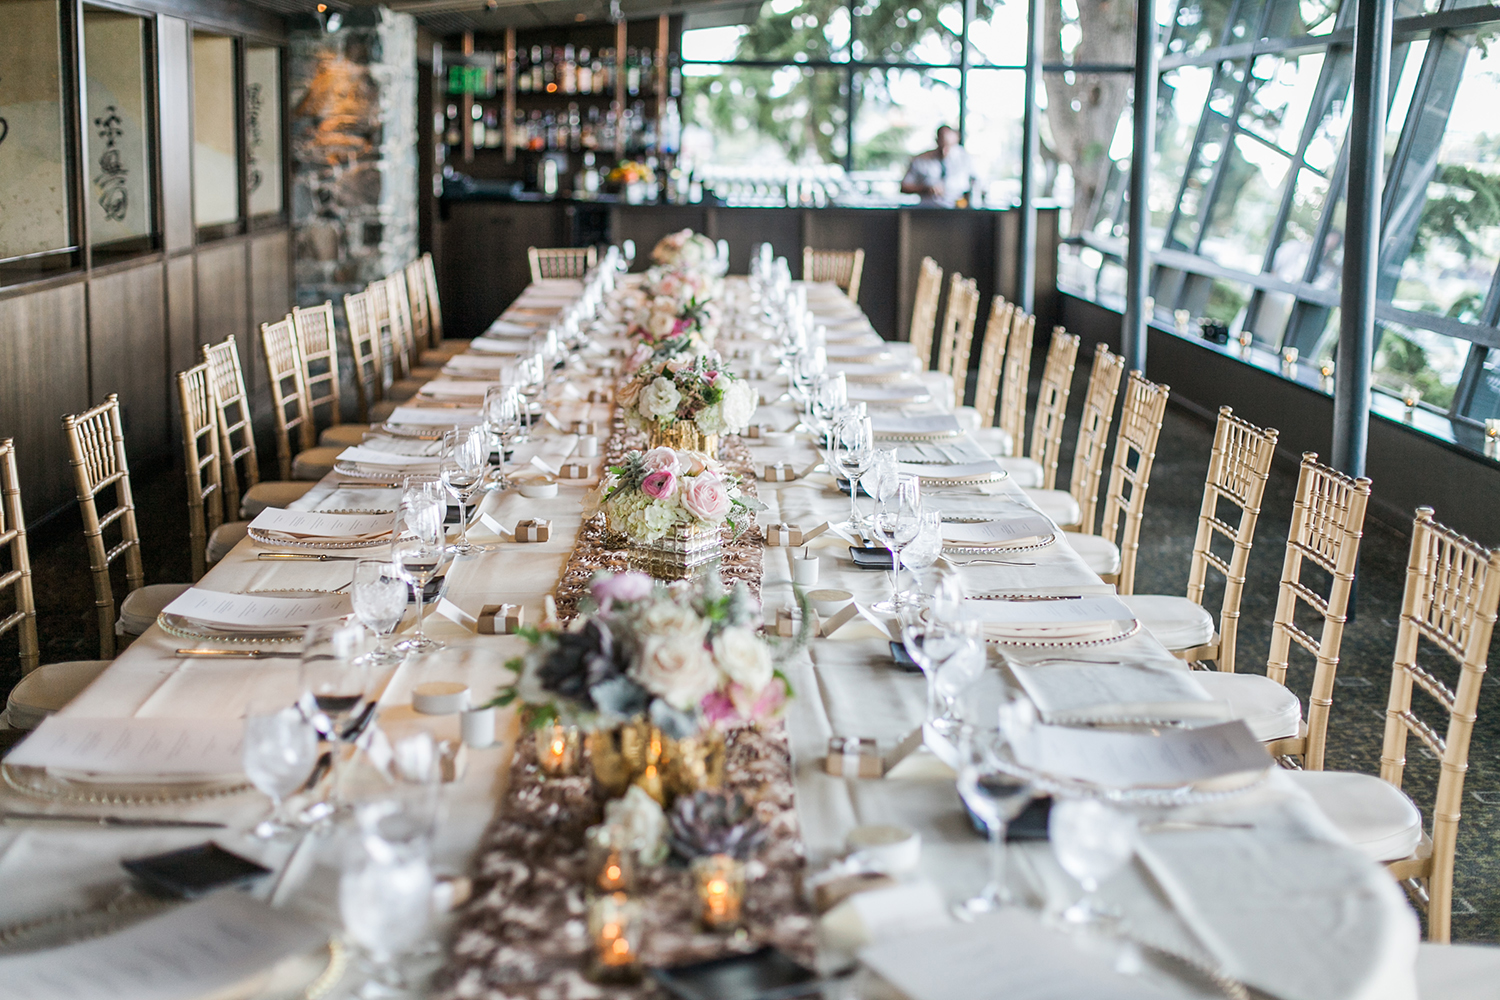 image of wedding tablescape at Canlis restaurant in Seattle designed with succulents by Garden Party Flowers of Bainbridge Island